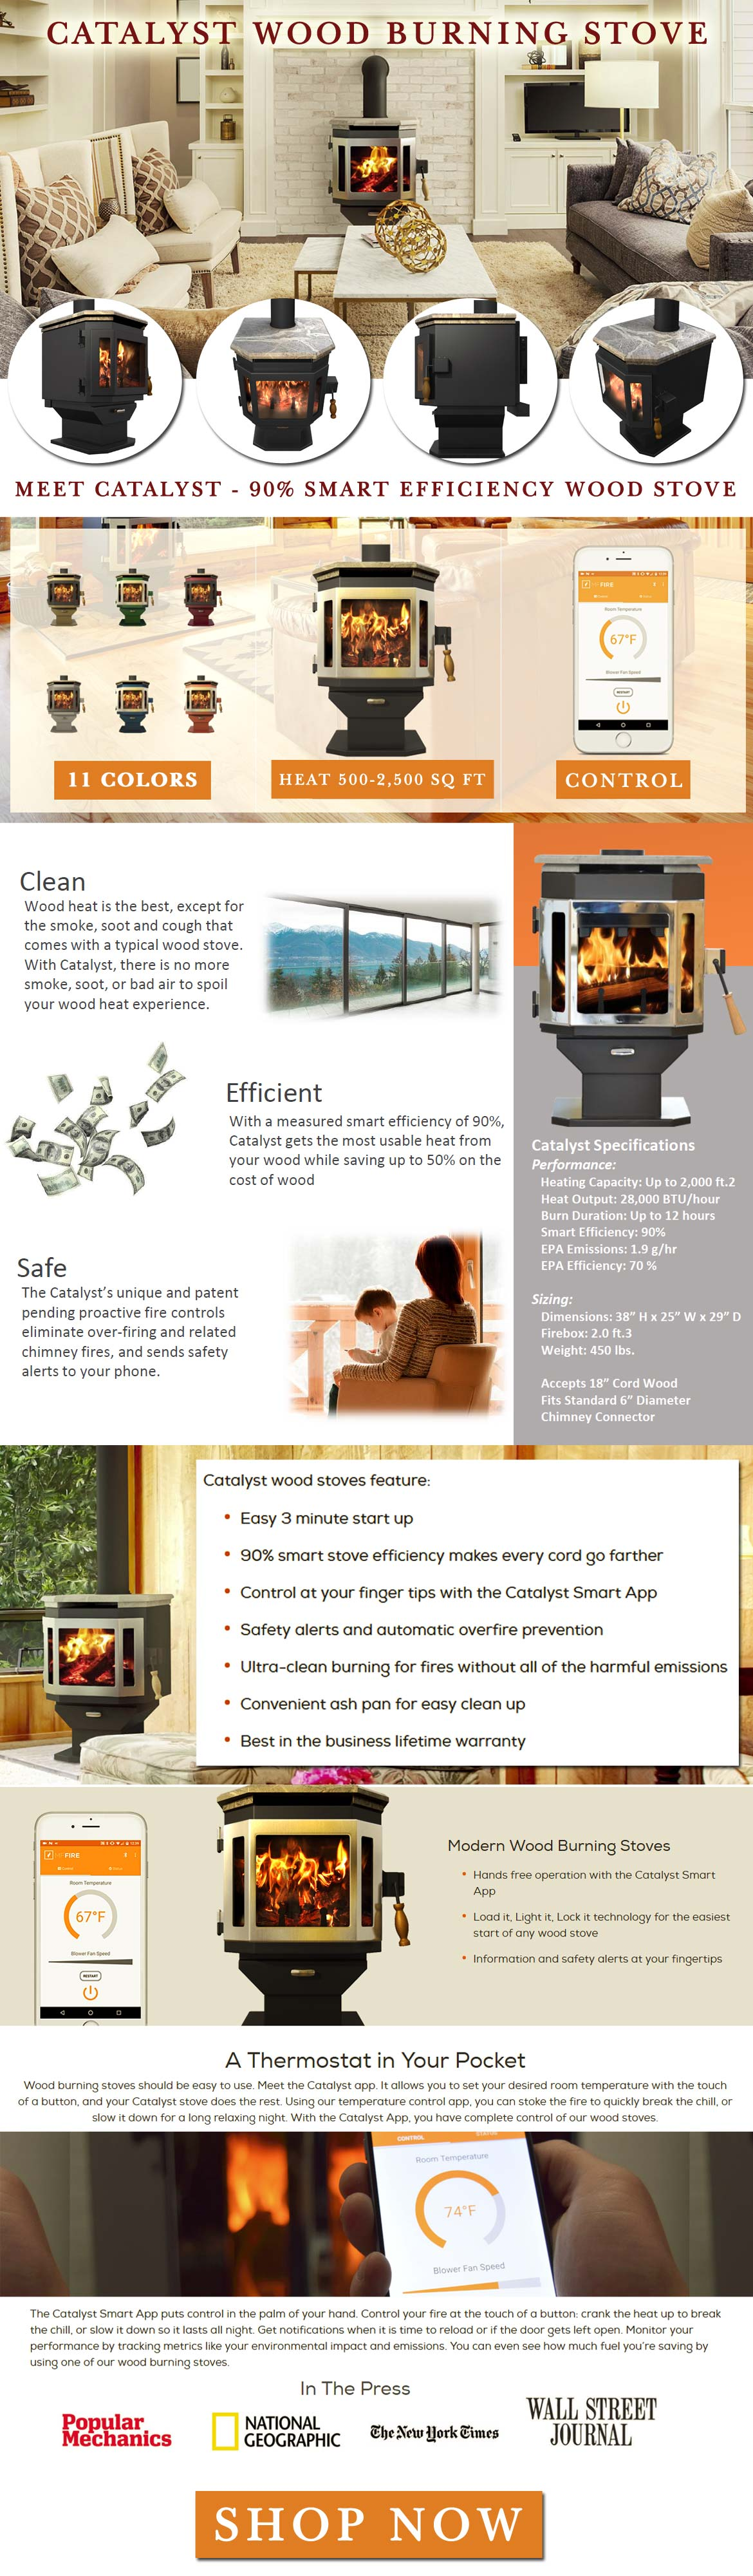 The Catalyst Wood Burning Stove